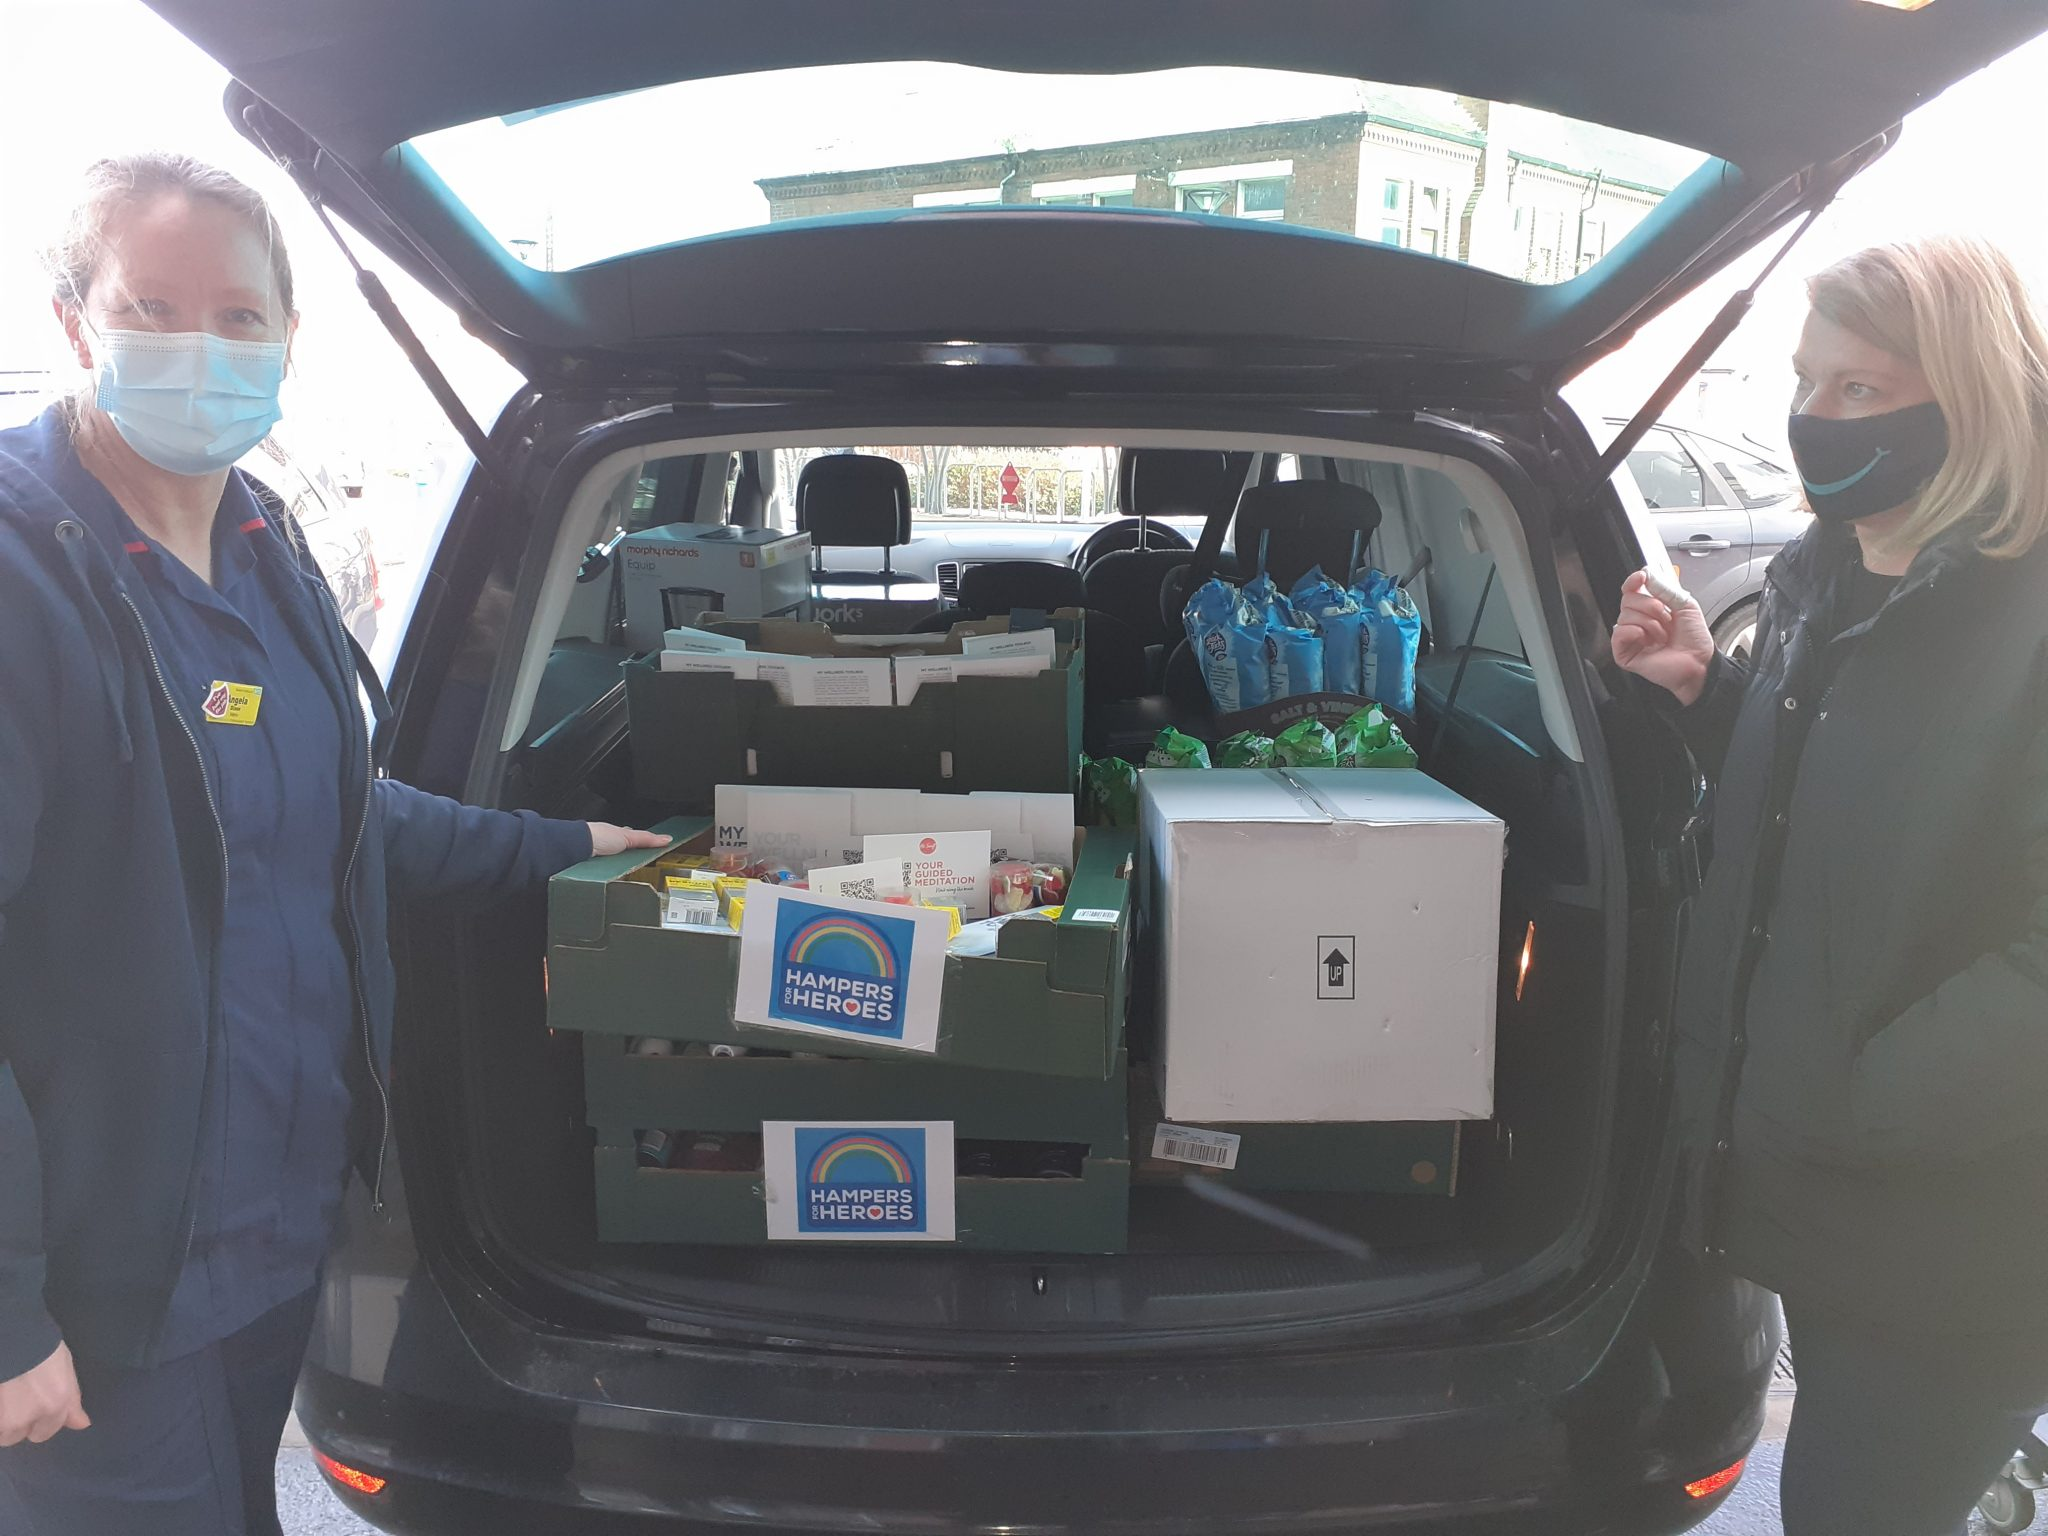 Hampers for heroes donation